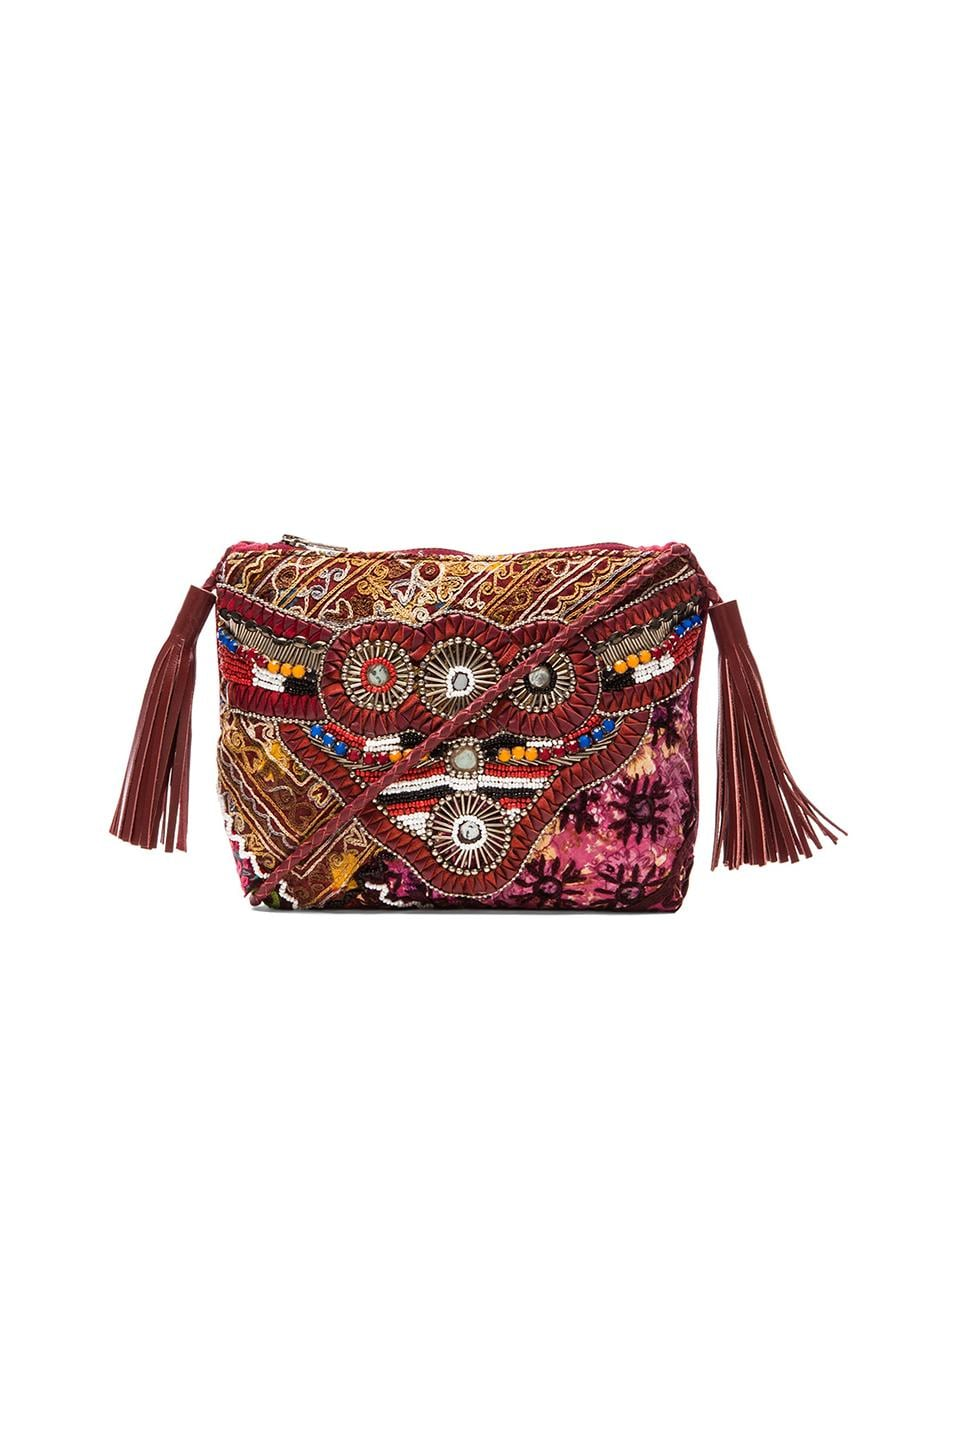 Gypsy 05 Ada Cross Body Bag in Burgundy